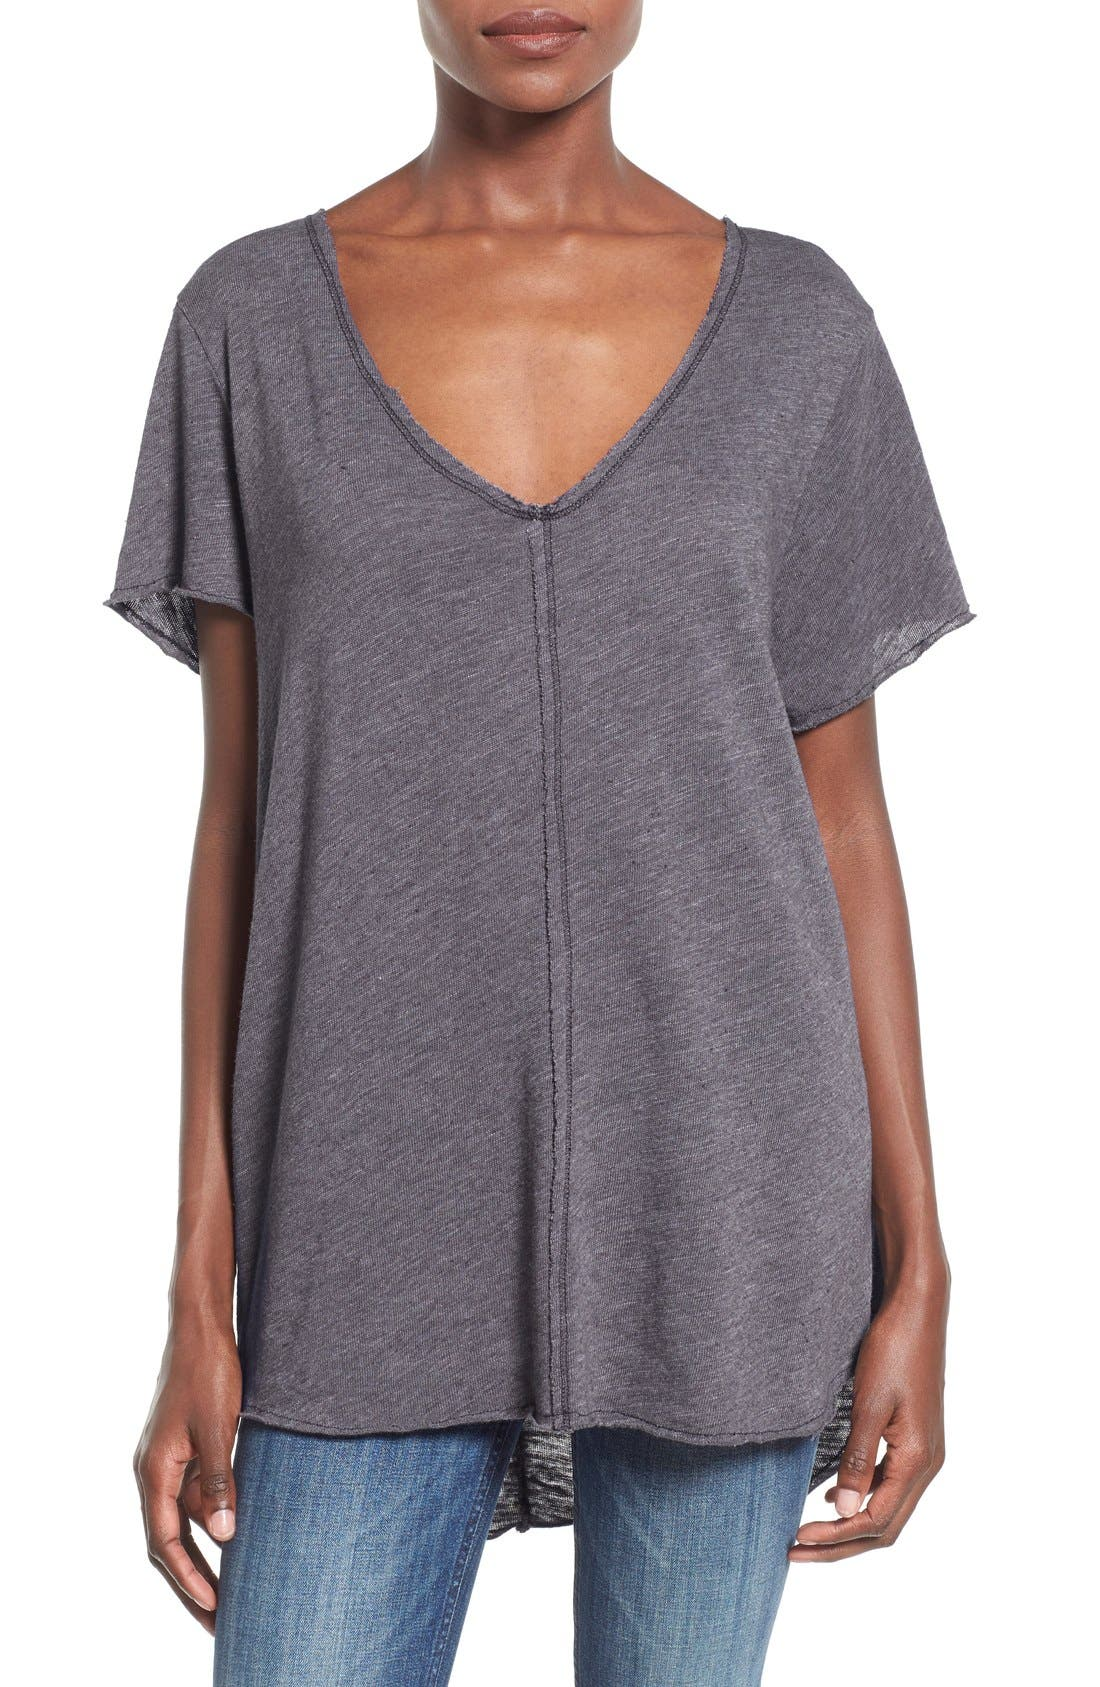 Alternate Image 1 Selected - Project Social T V-Neck Tee